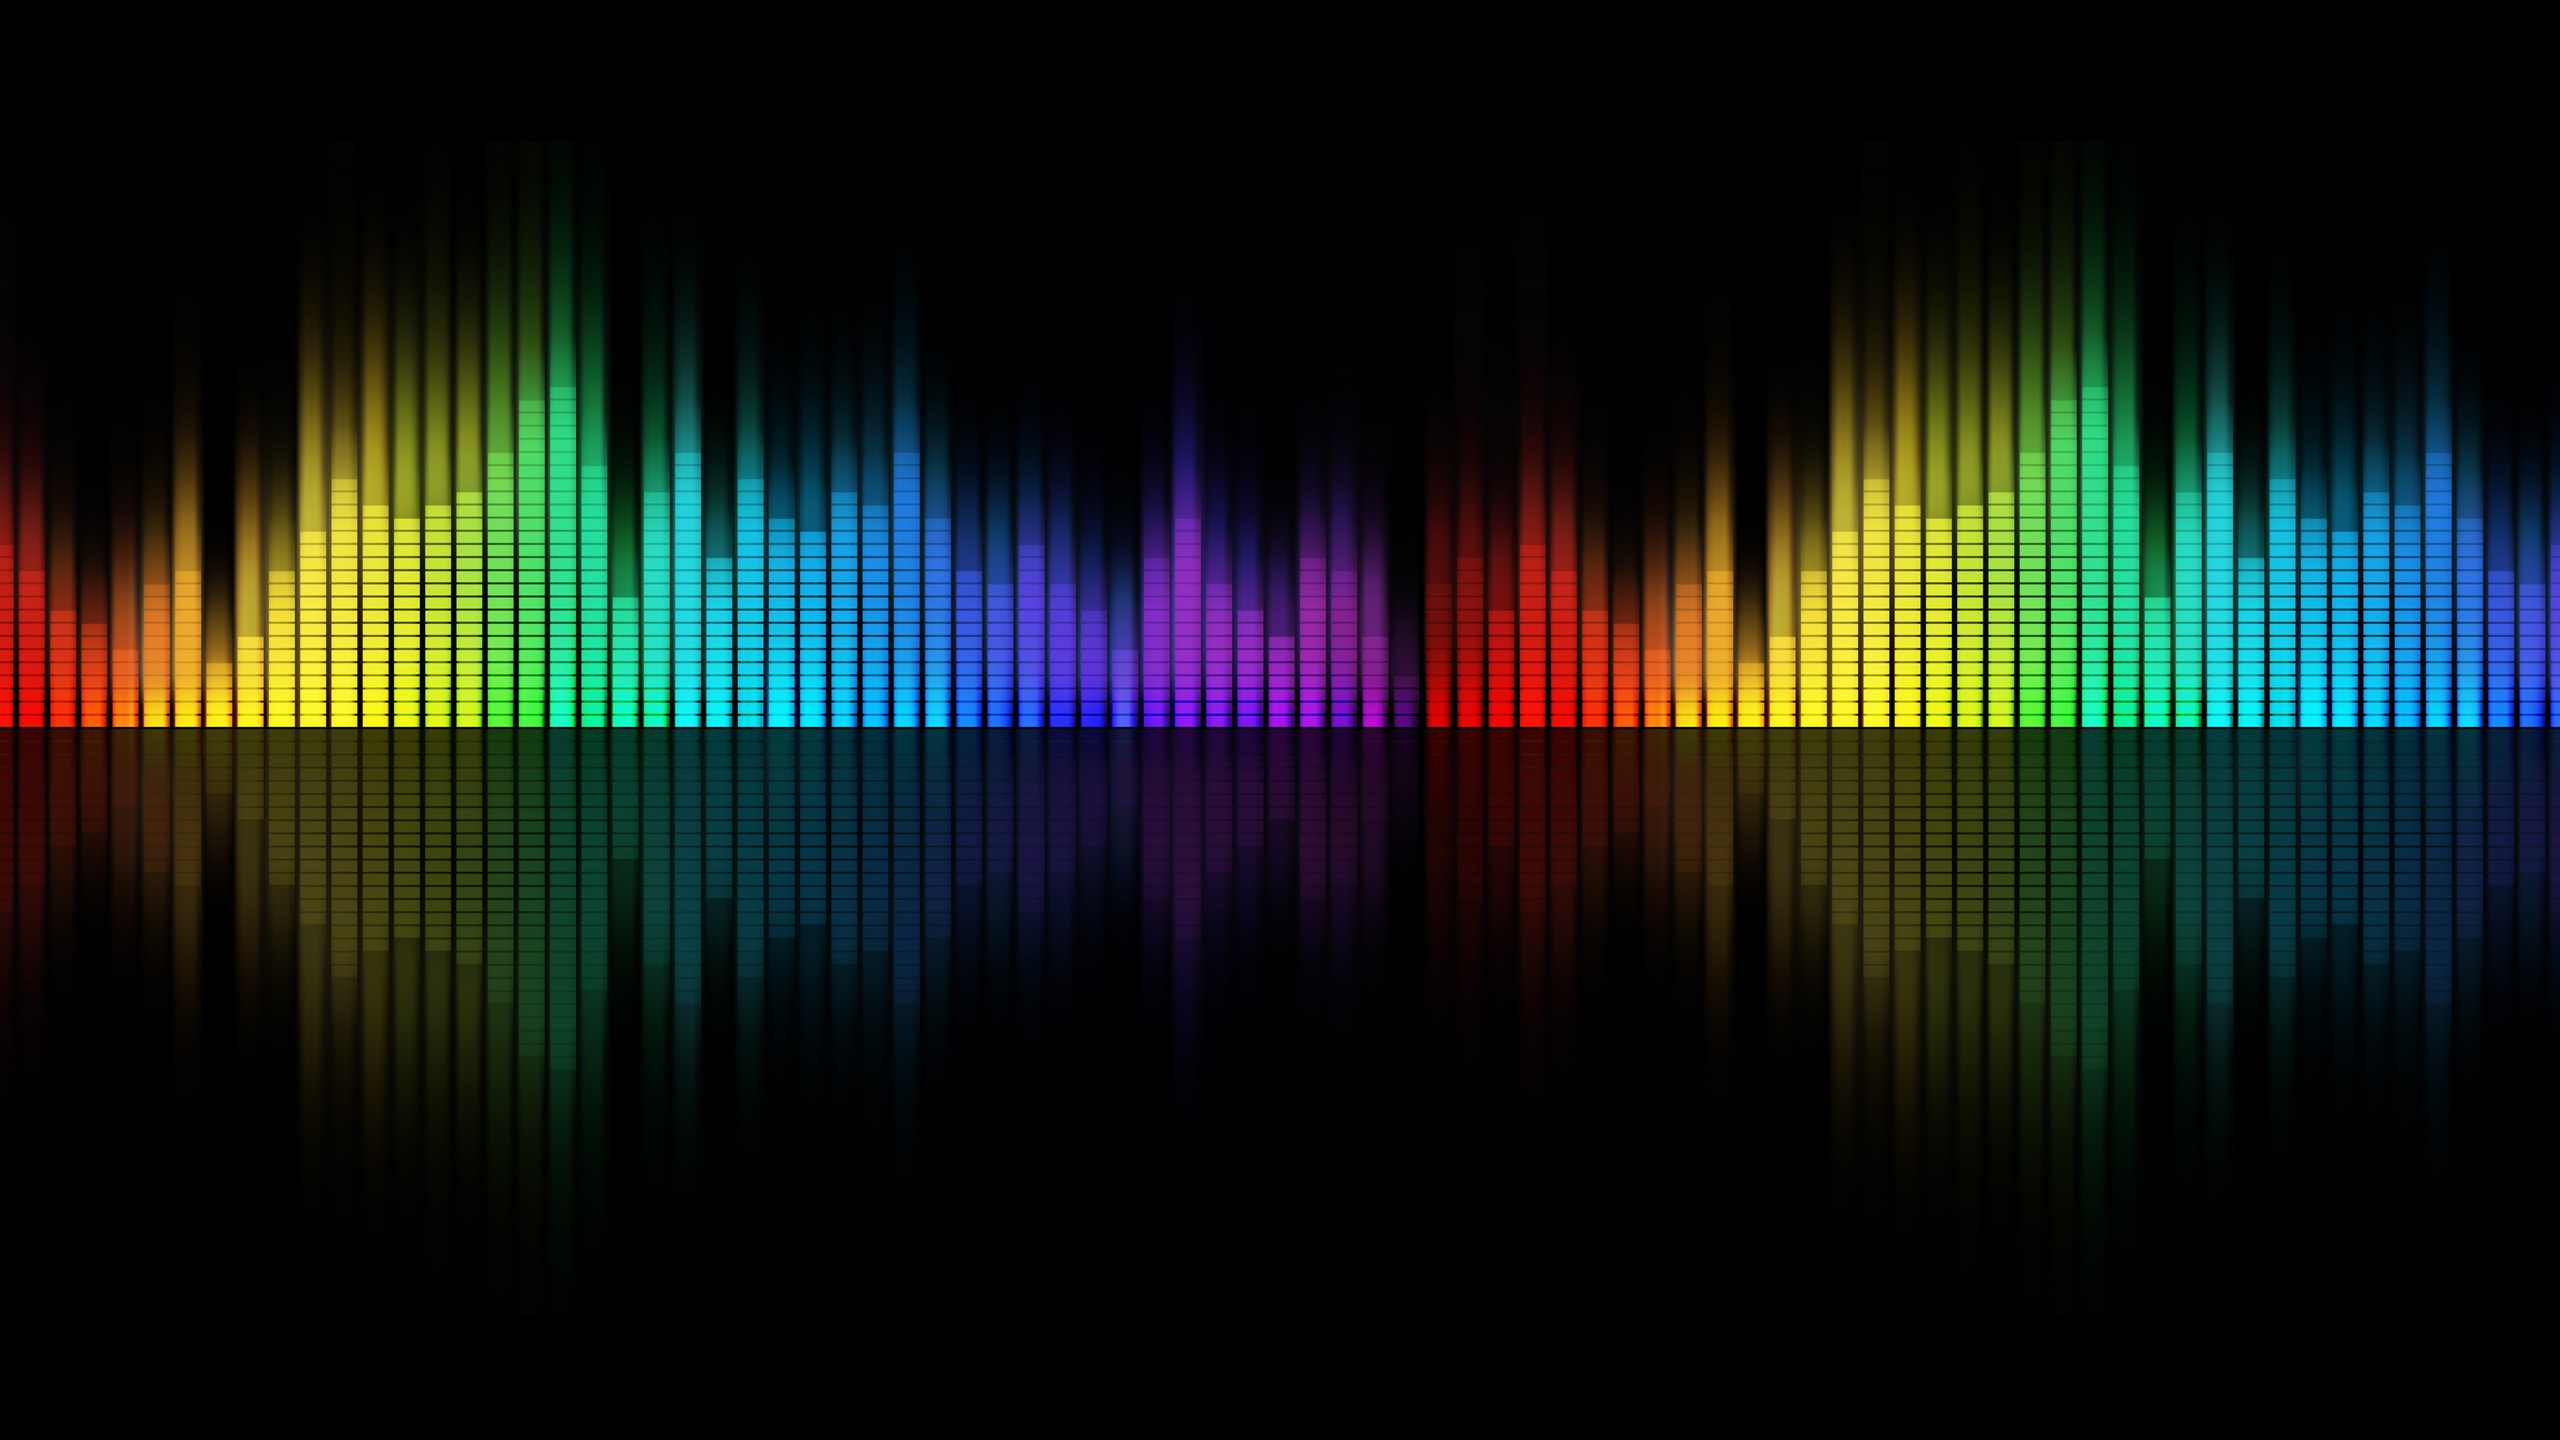 Music Visualization Wallpaper